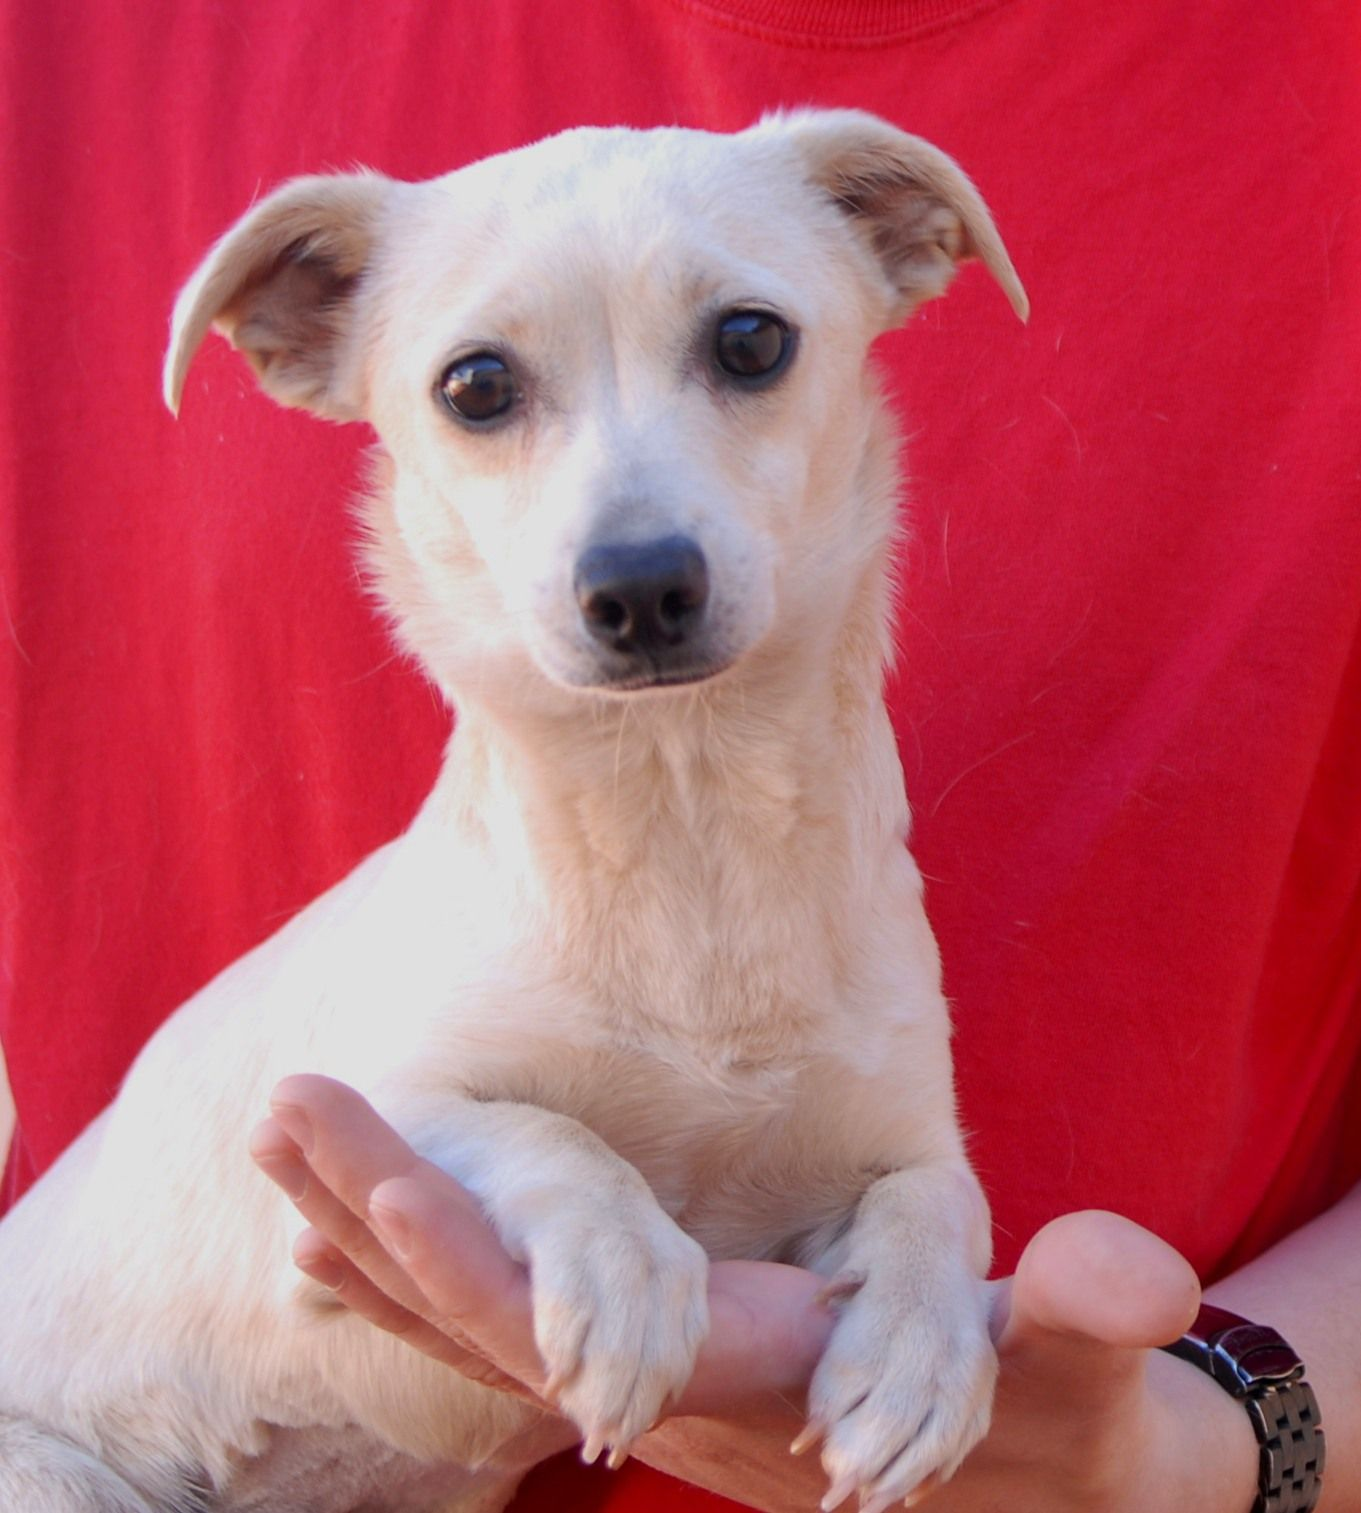 Kayla Is A Baby Girl Very Eager For Love And Companionship She Is An Adorable Blend Of Small Breeds Likely Includin Dog Adoption Pet Adoption Animal Shelter